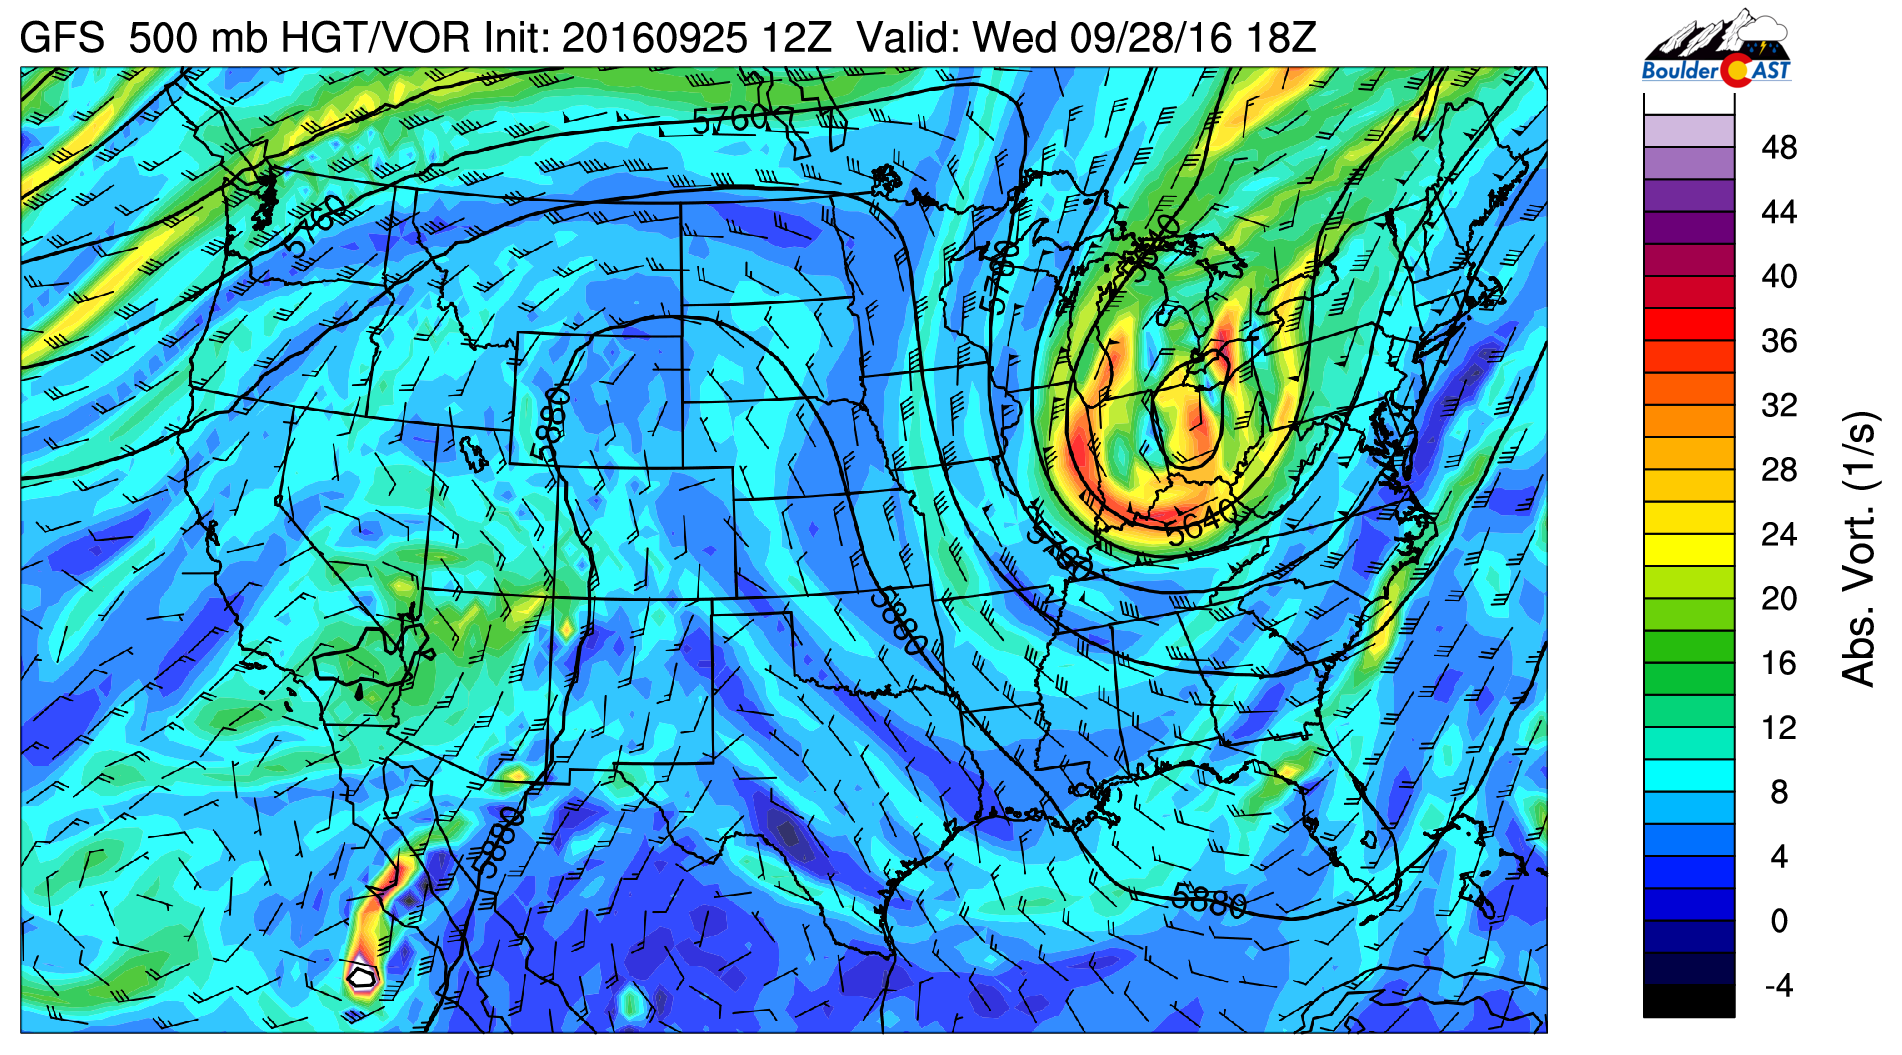 GFS 500 mb vorticity and wind field for Wednesday